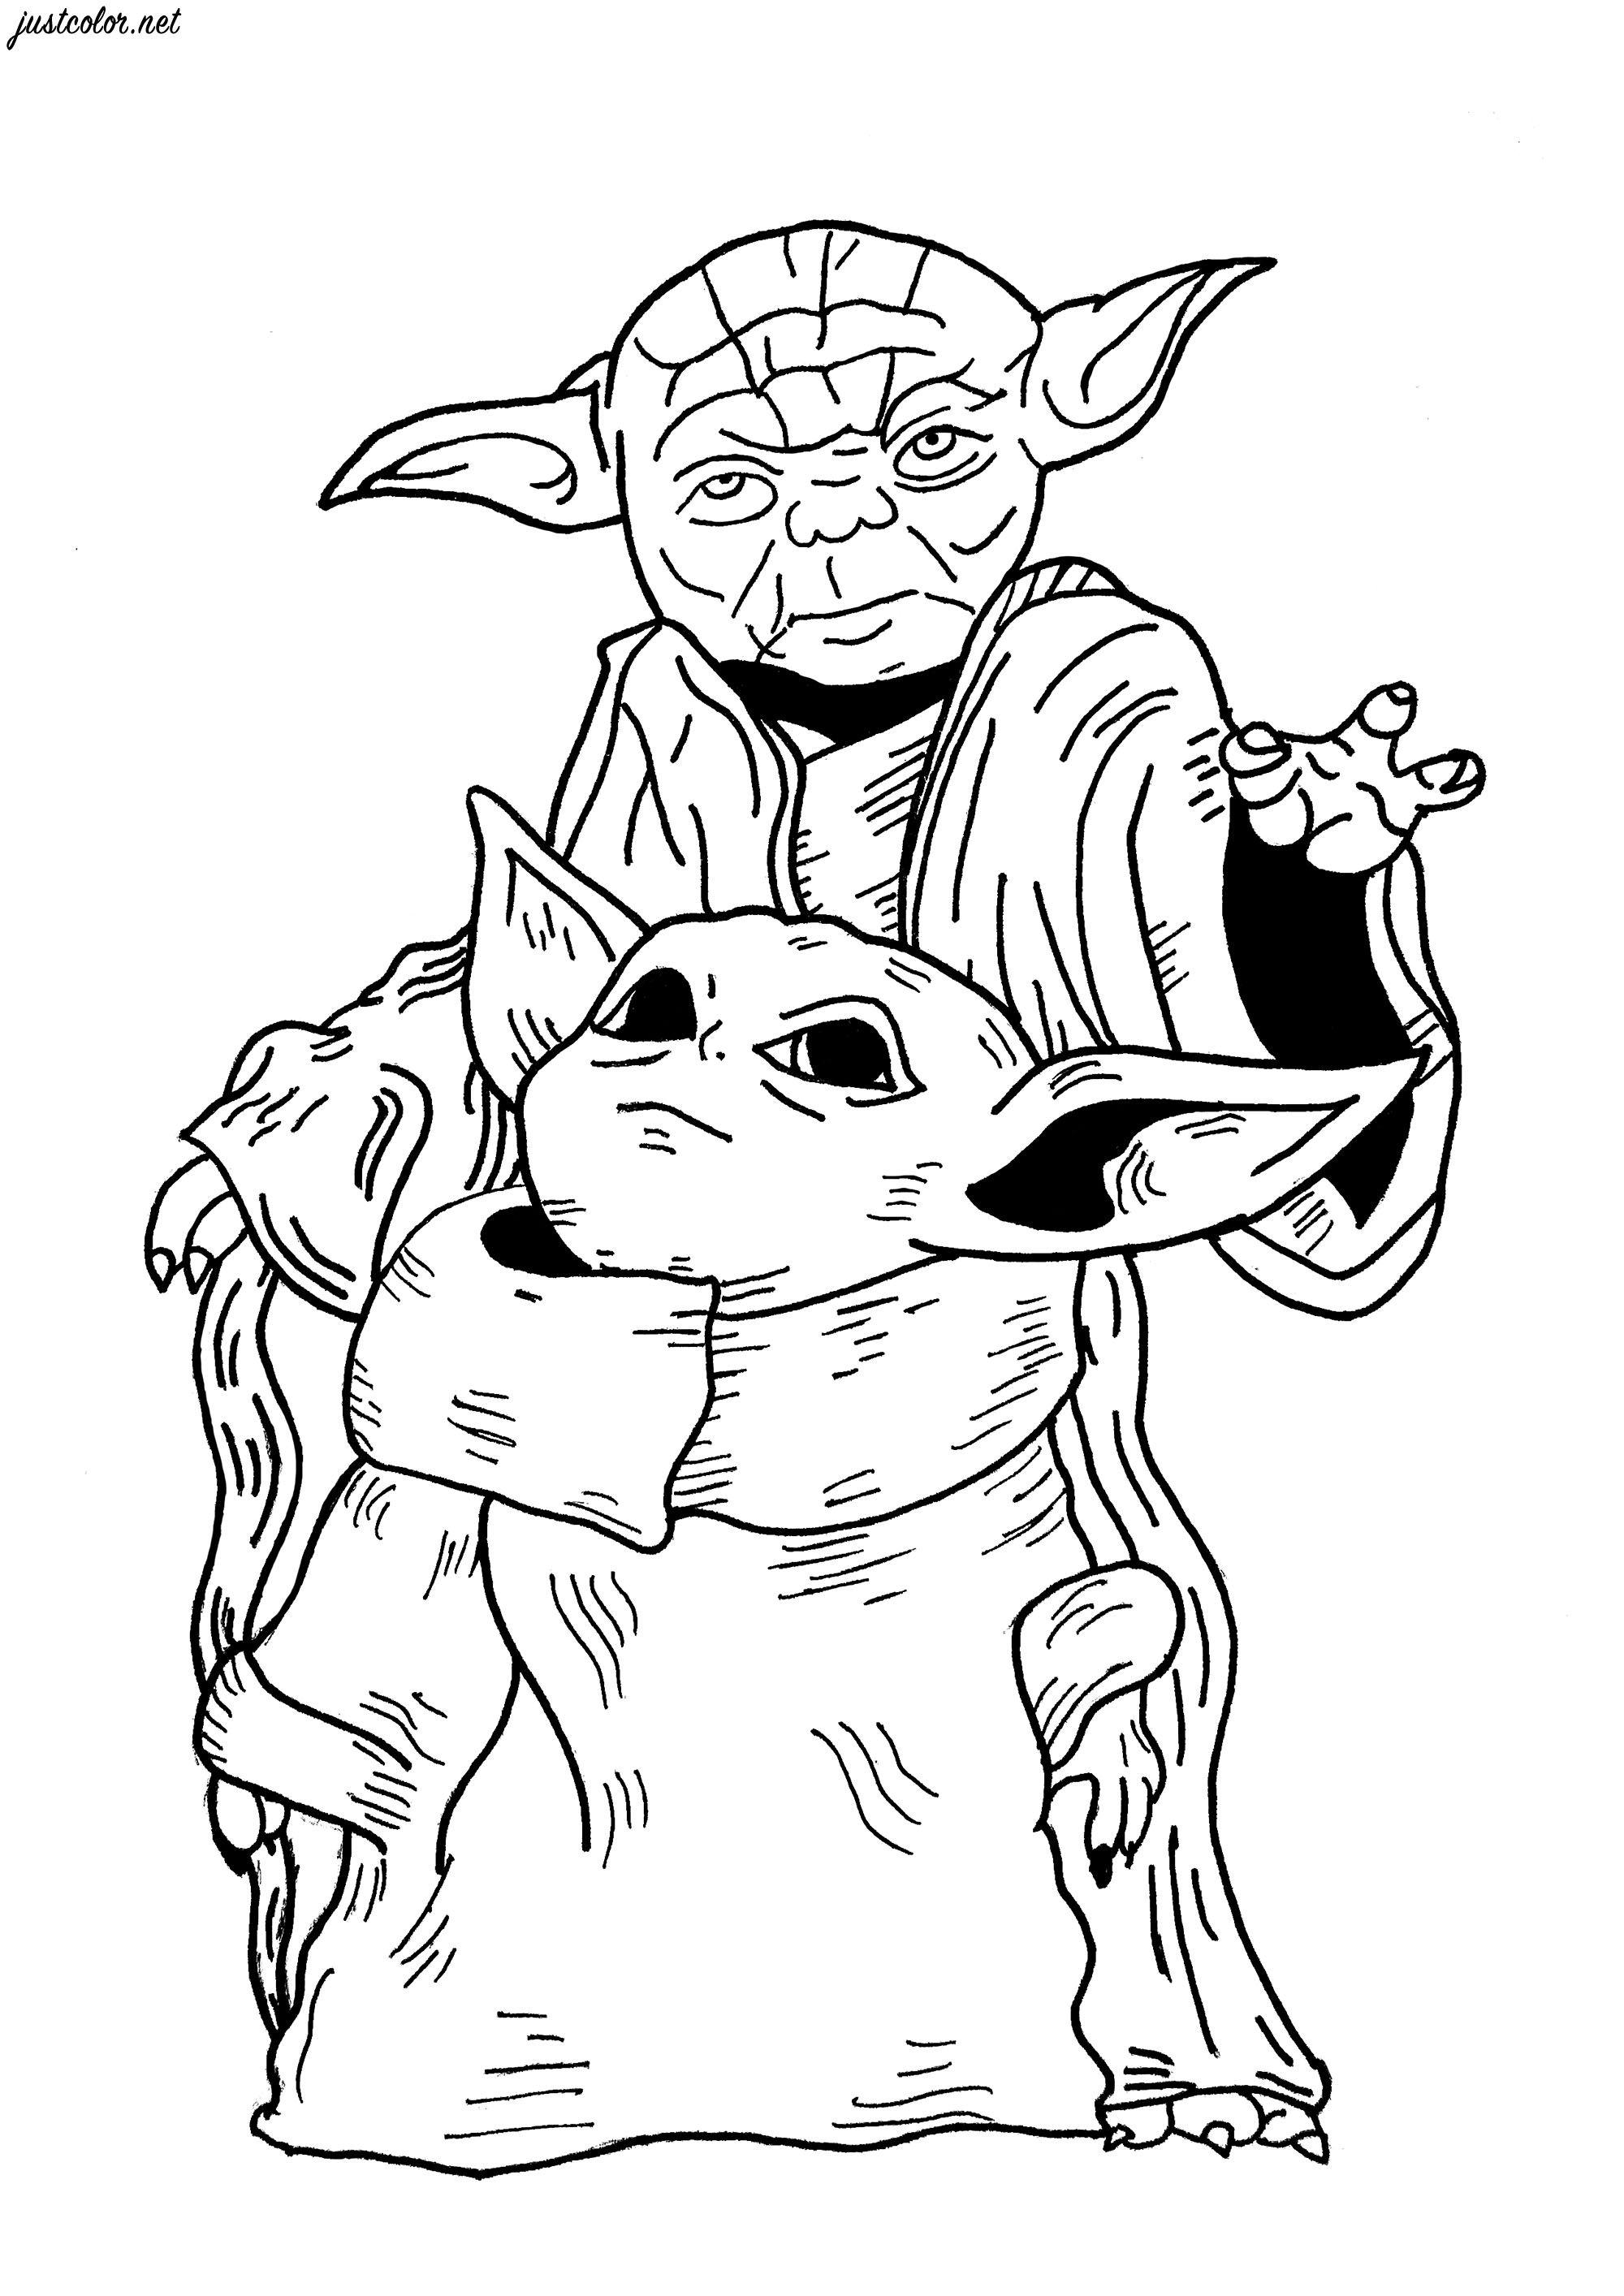 Baby Yoda Yoda Star Wars Movies Coloring Pages For Adults